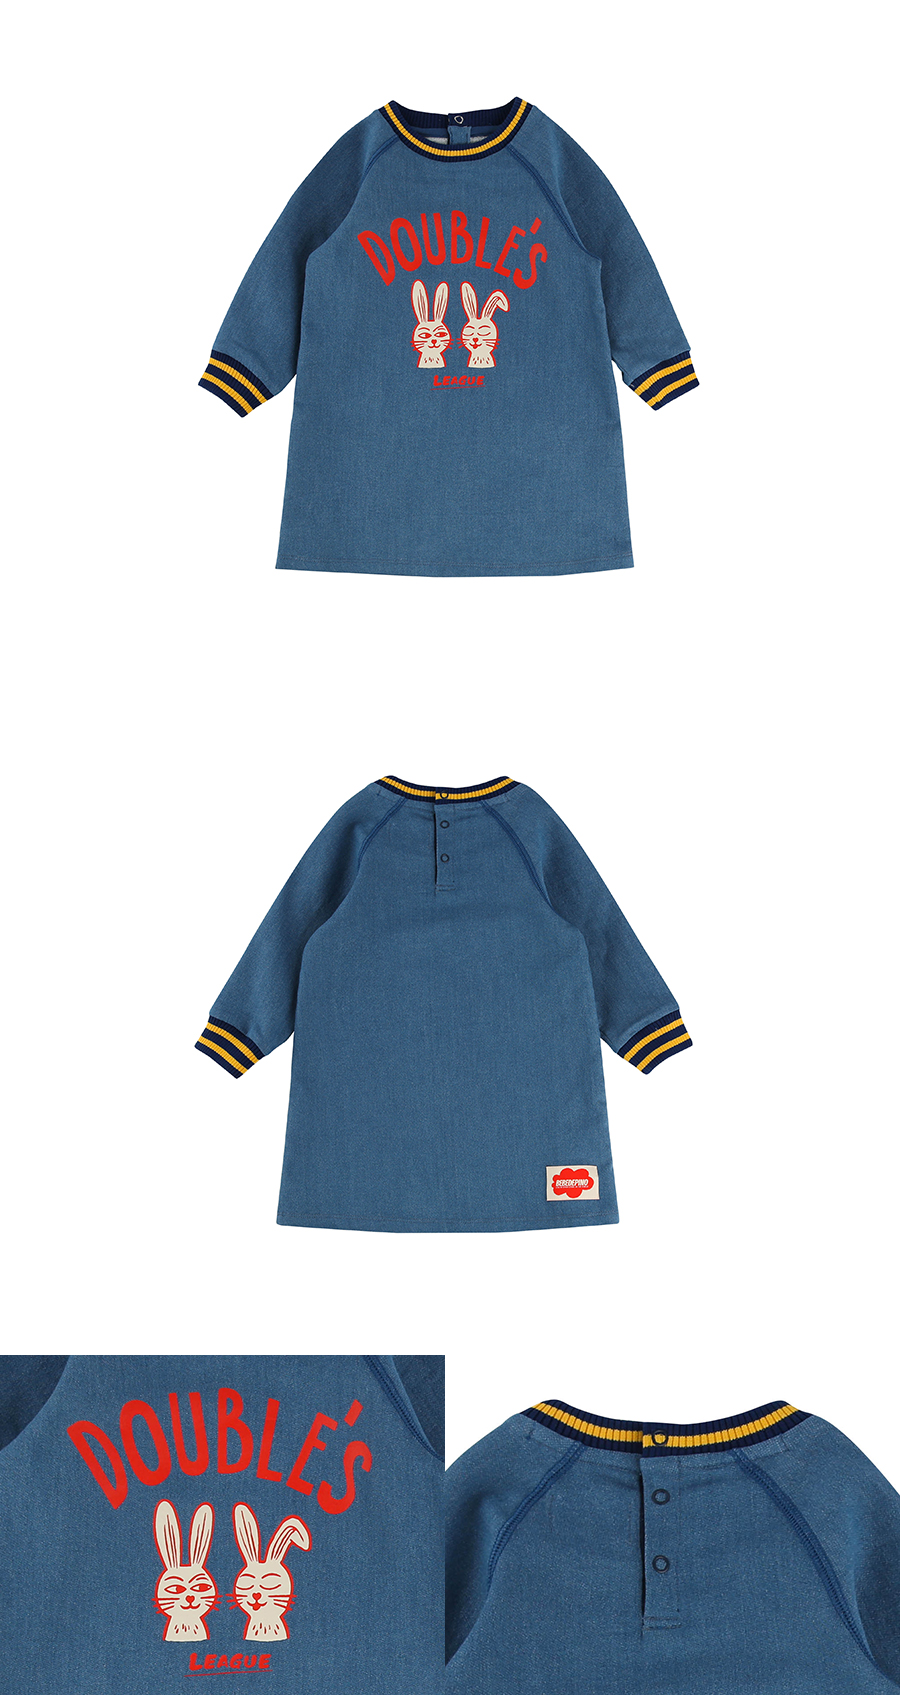 Doubles rabbit baby jersey denim dress 상세 이미지